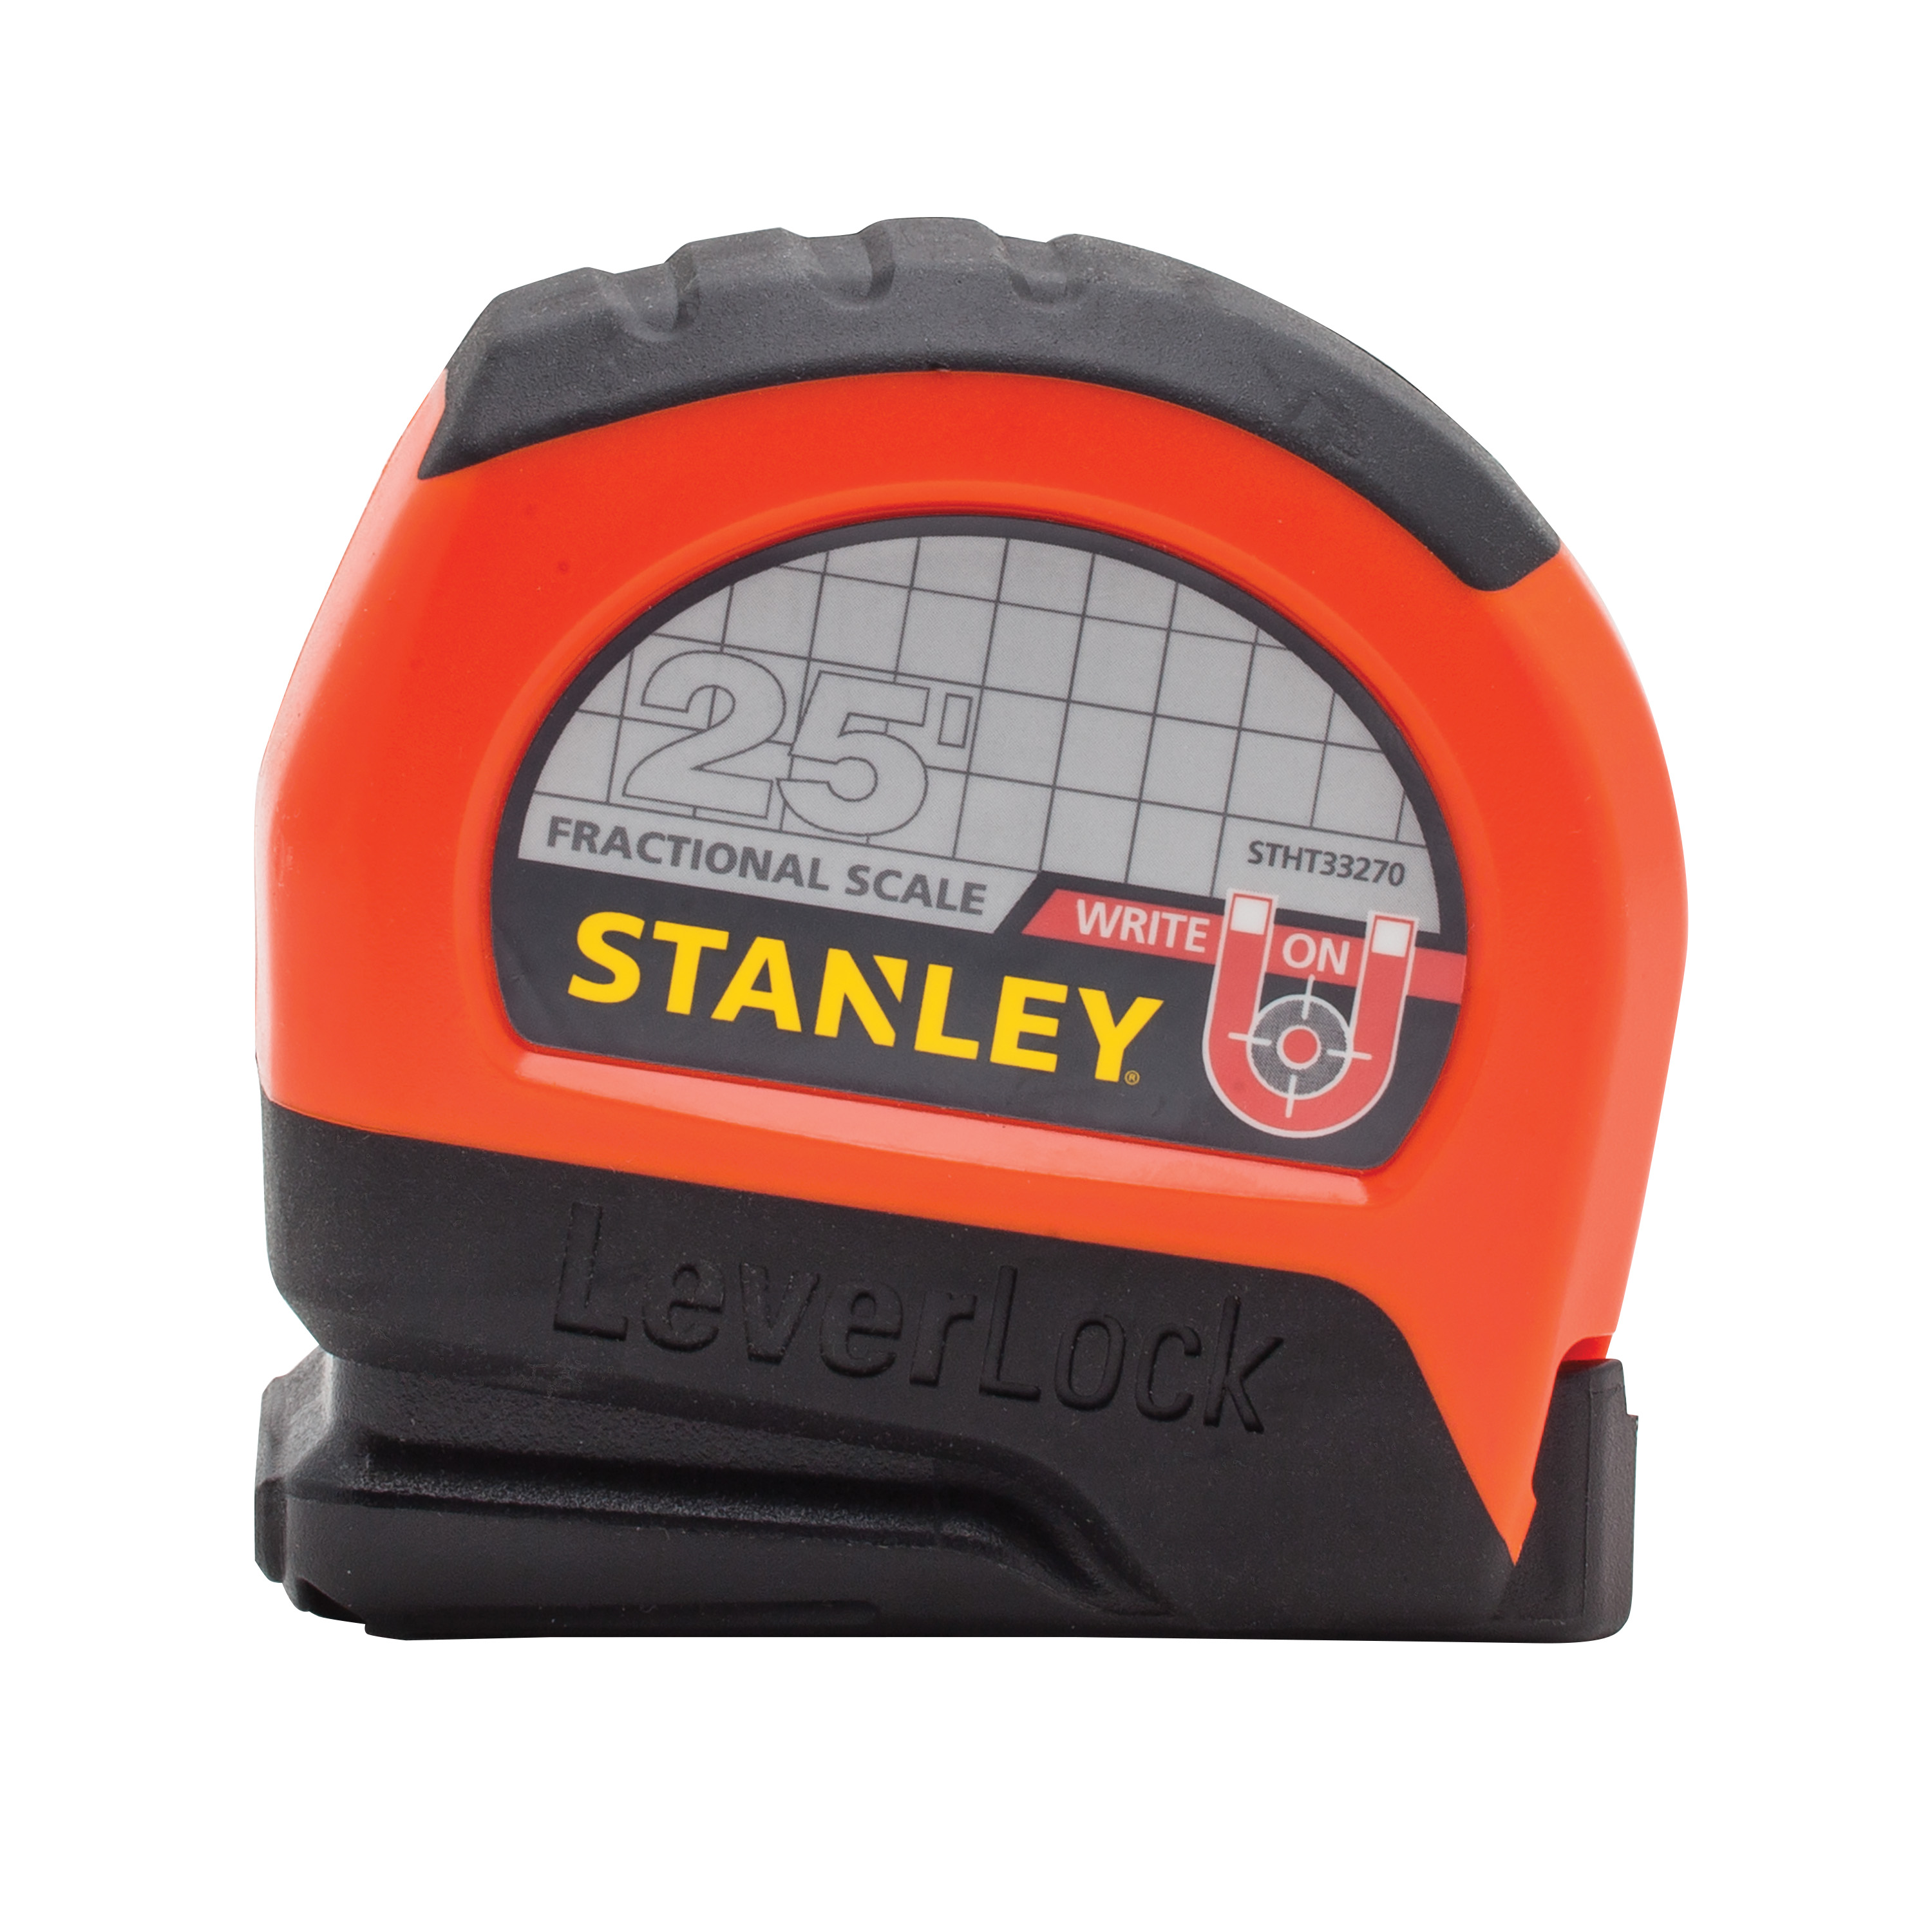 STANLEY STHT33270 25ft LeverLock Magnetic Fractional Tape Measure